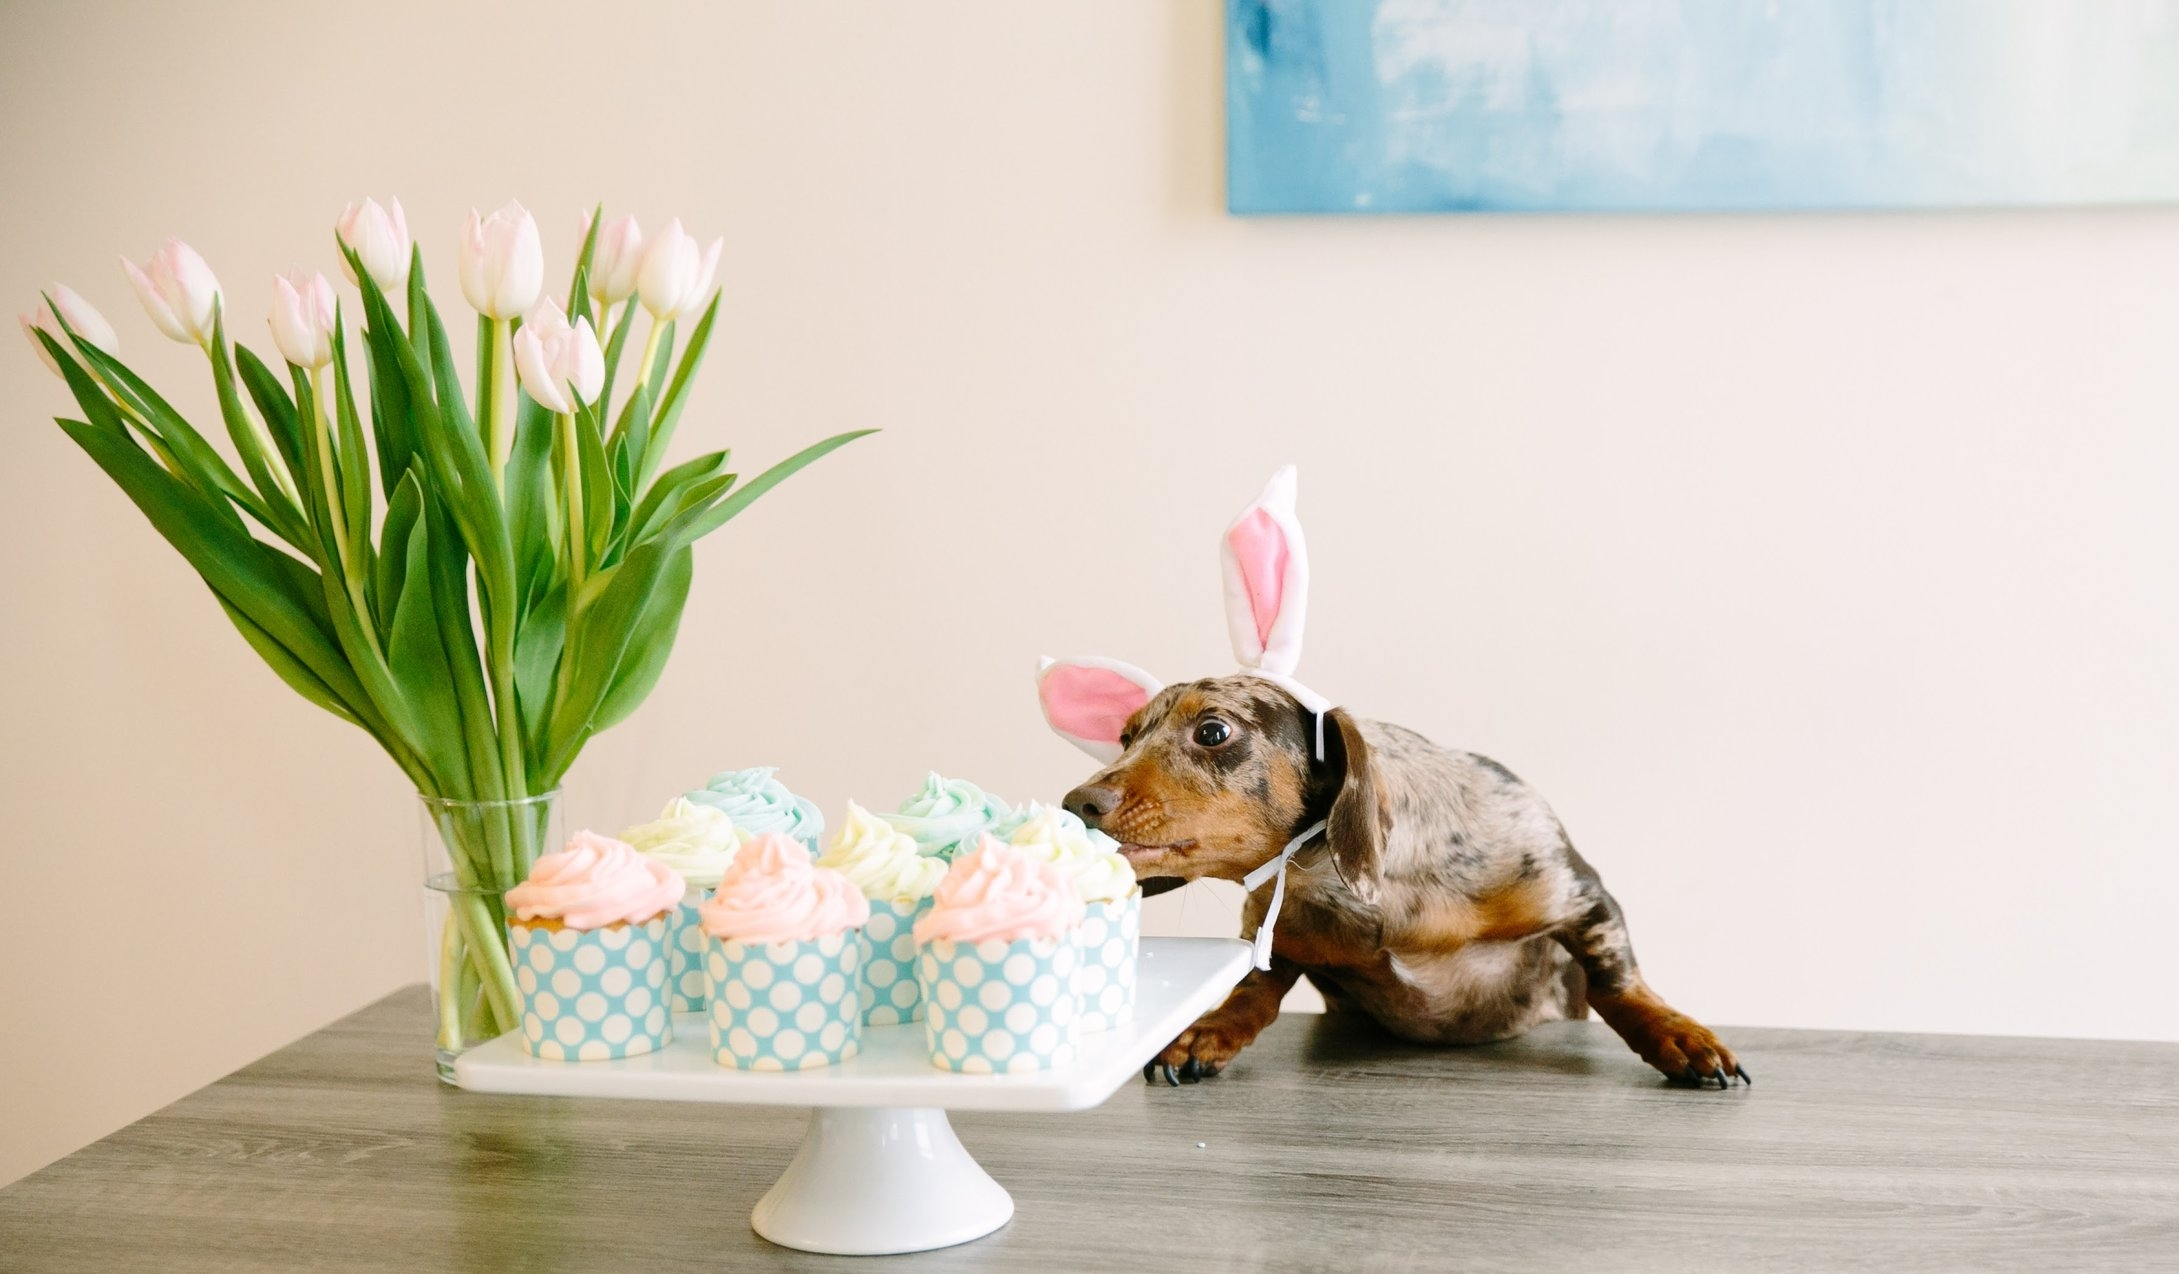 Here comes the Easter Weenie! 🐰